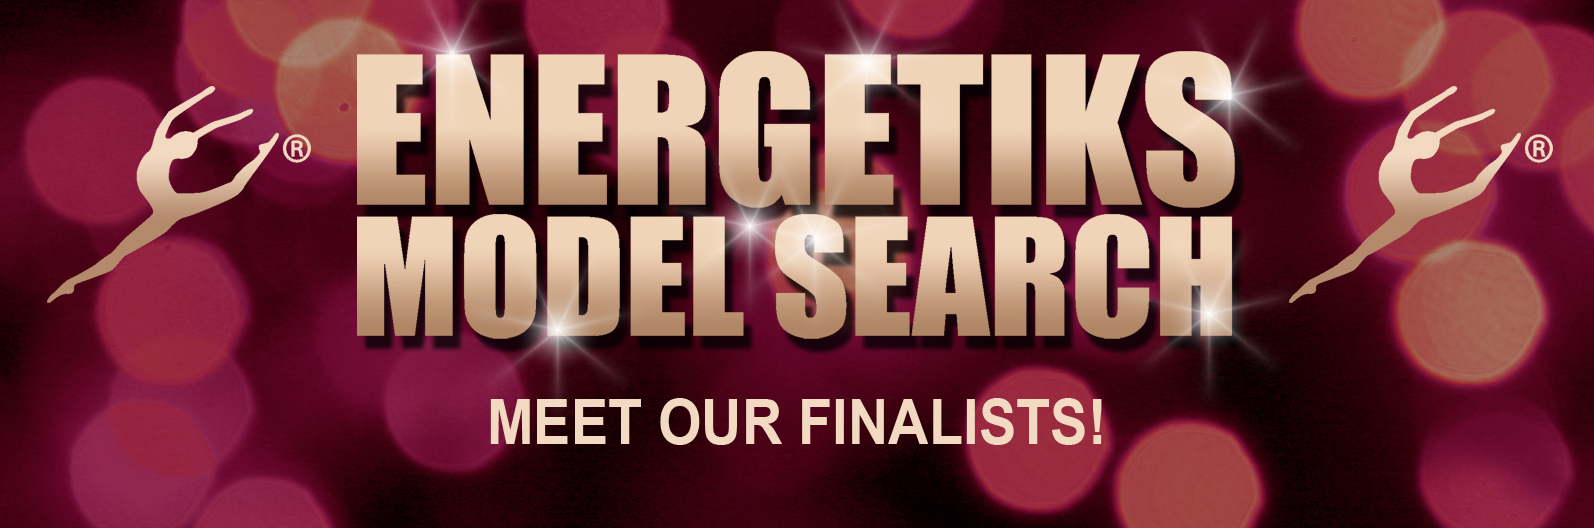 Meet our finalists